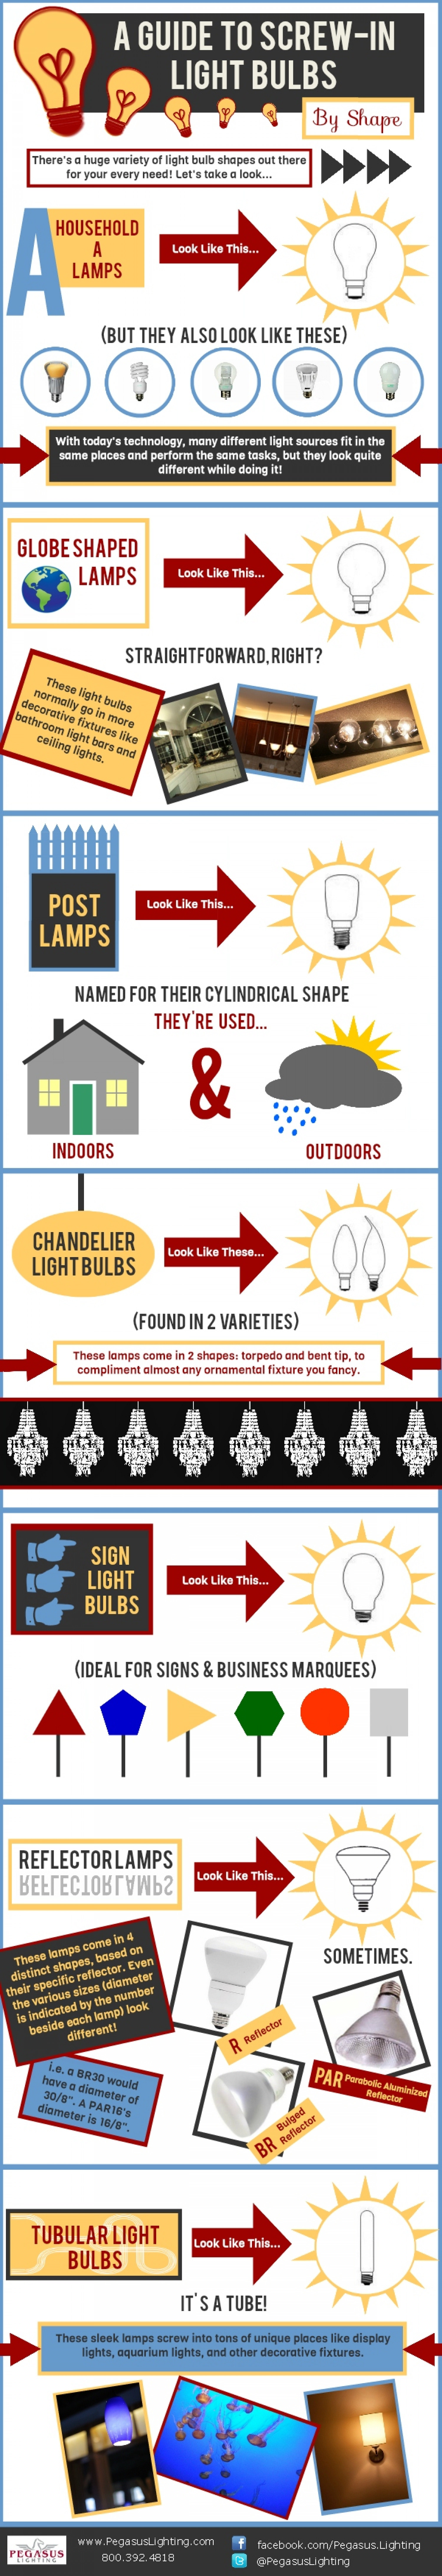 A Guide To Screw-In Light Bulbs By Shape Infographic